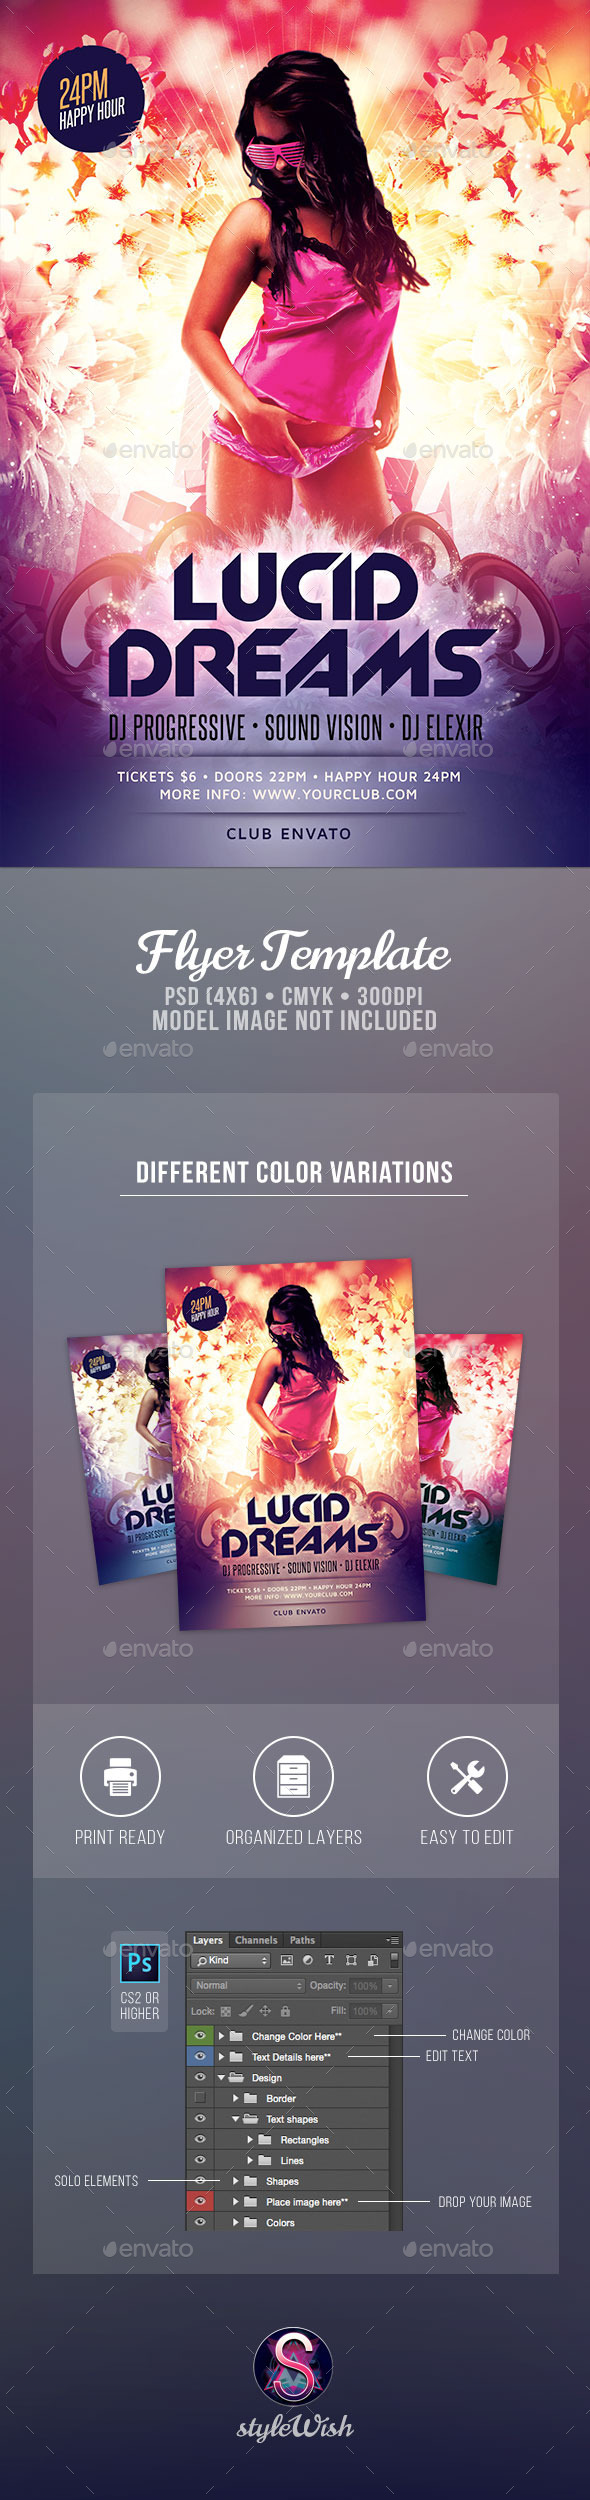 Lucid Dreams Flyer - Clubs & Parties Events